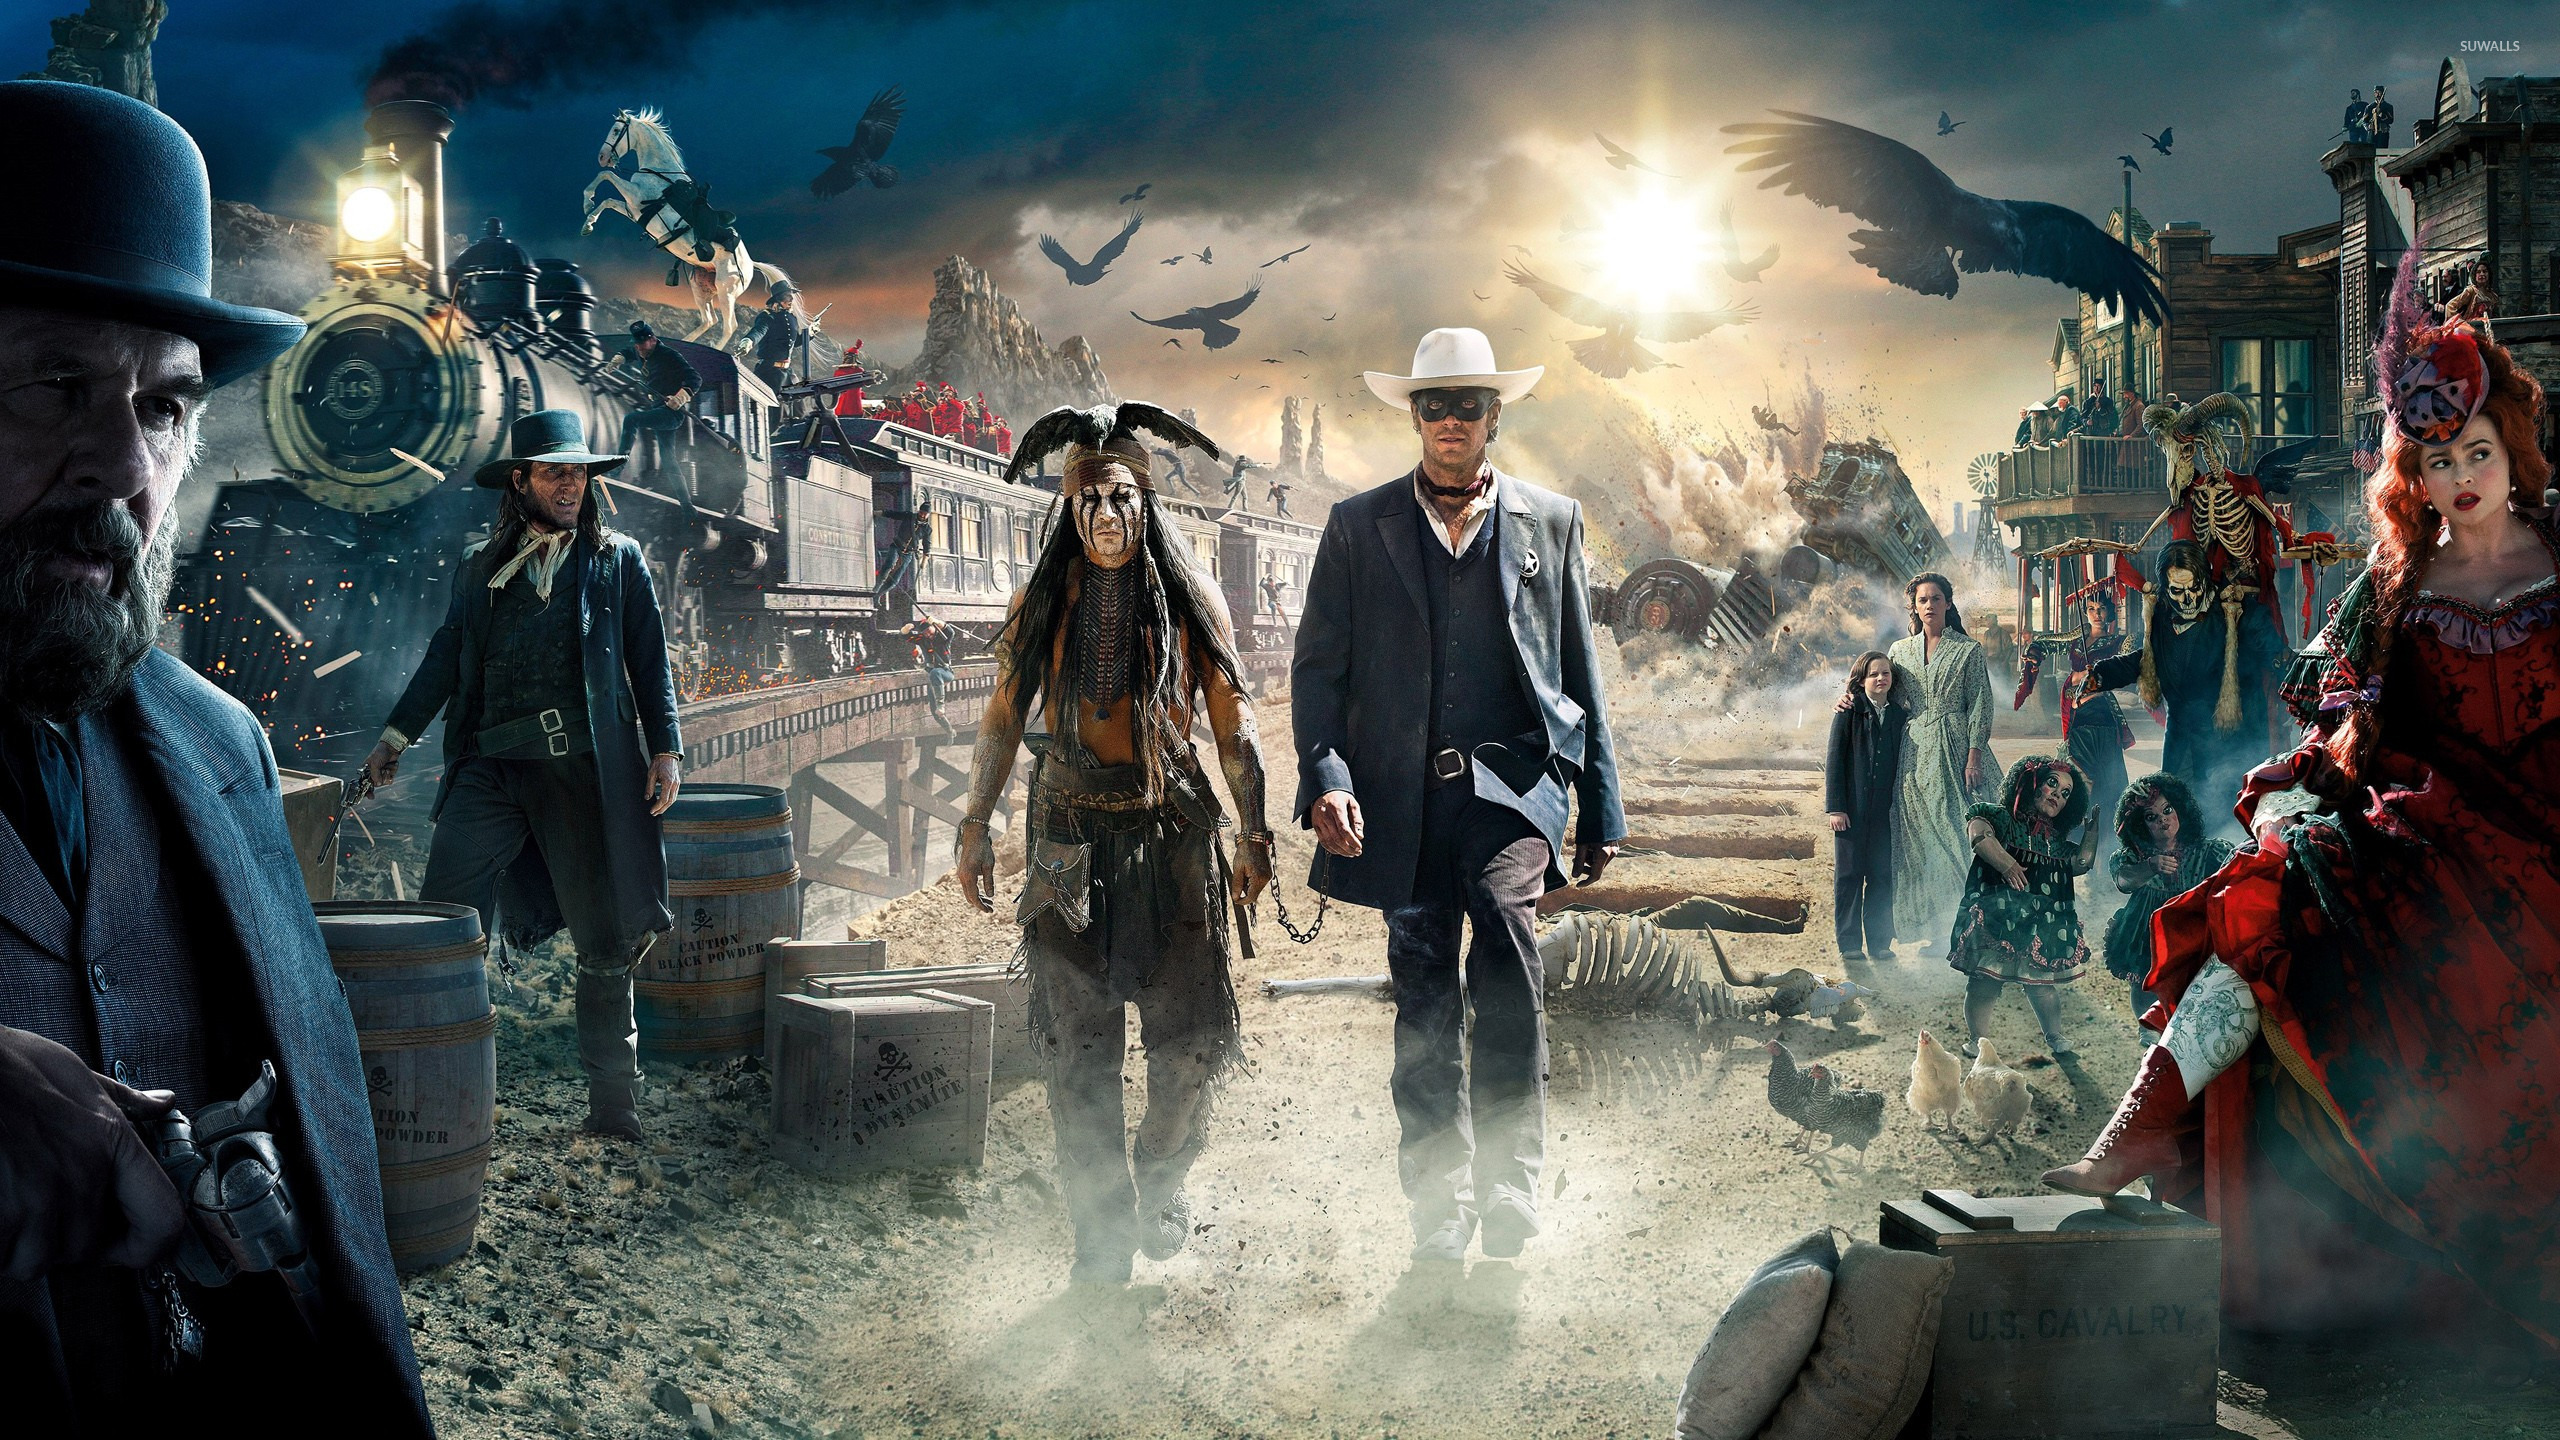 the lone ranger 2 wallpaper wallpapers 22028